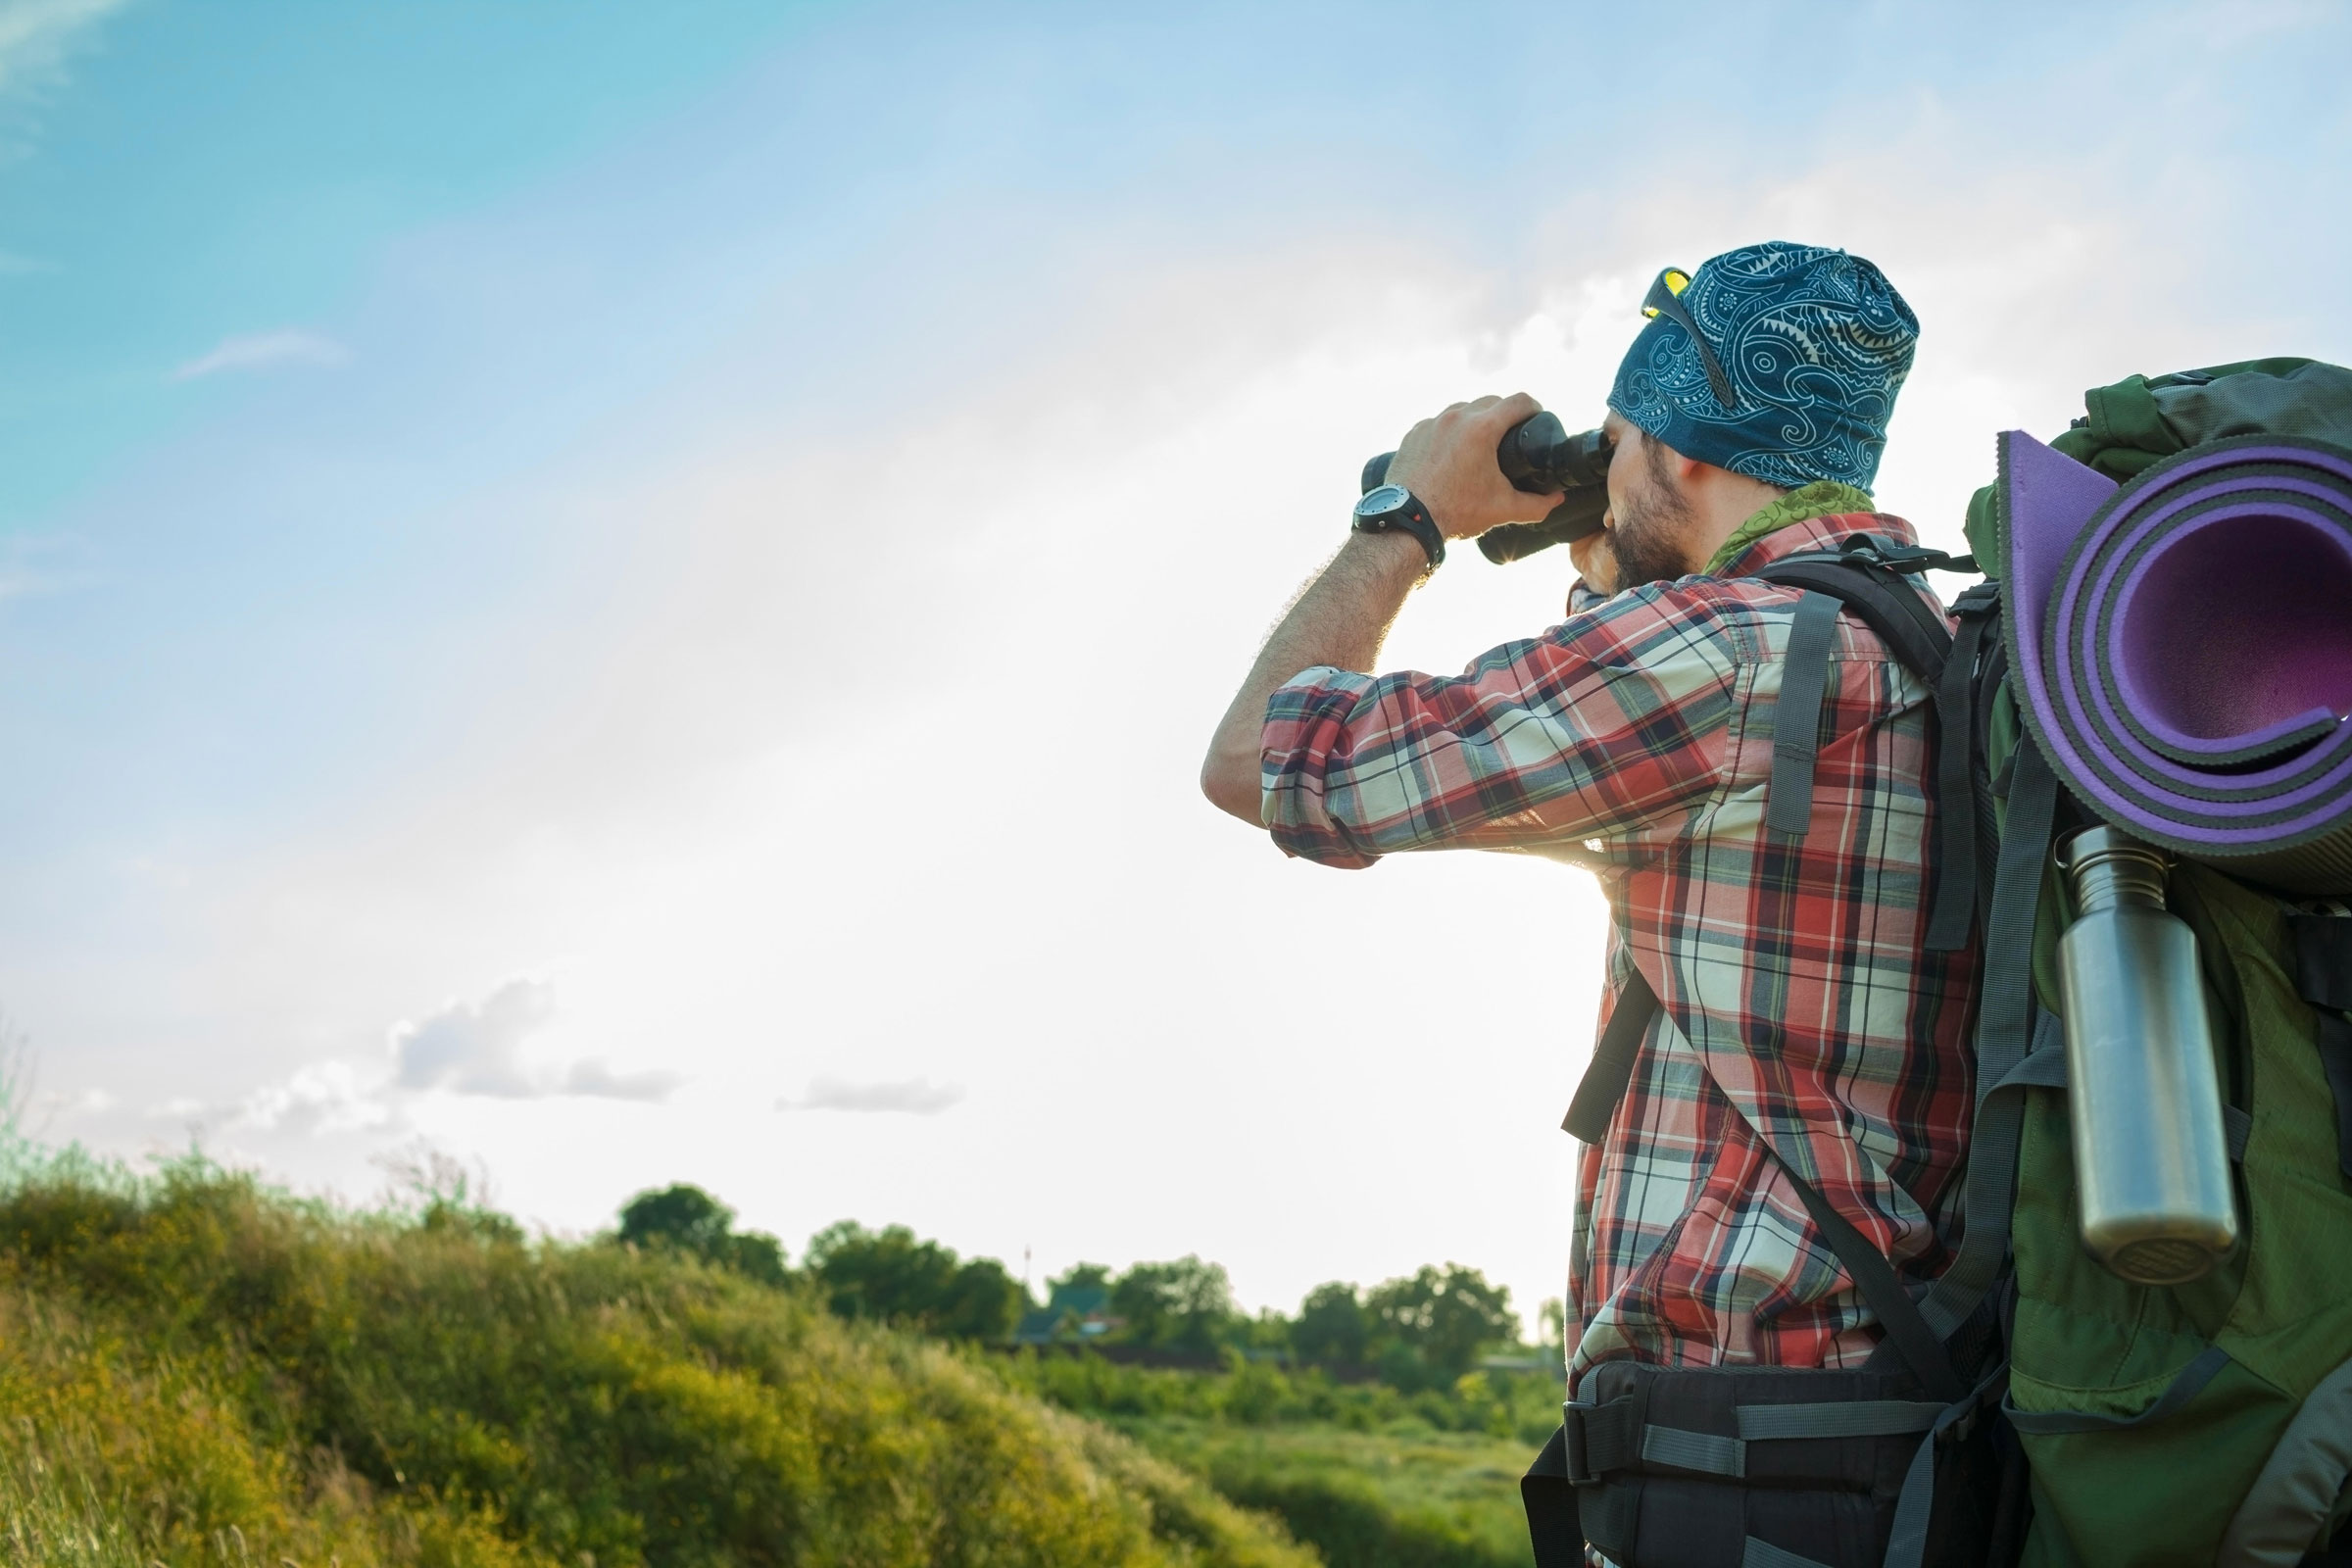 Load up your backpack to roam far from spots popular with humans and get closer to those popular with birds. Volodymyr Melnyk/Alamy